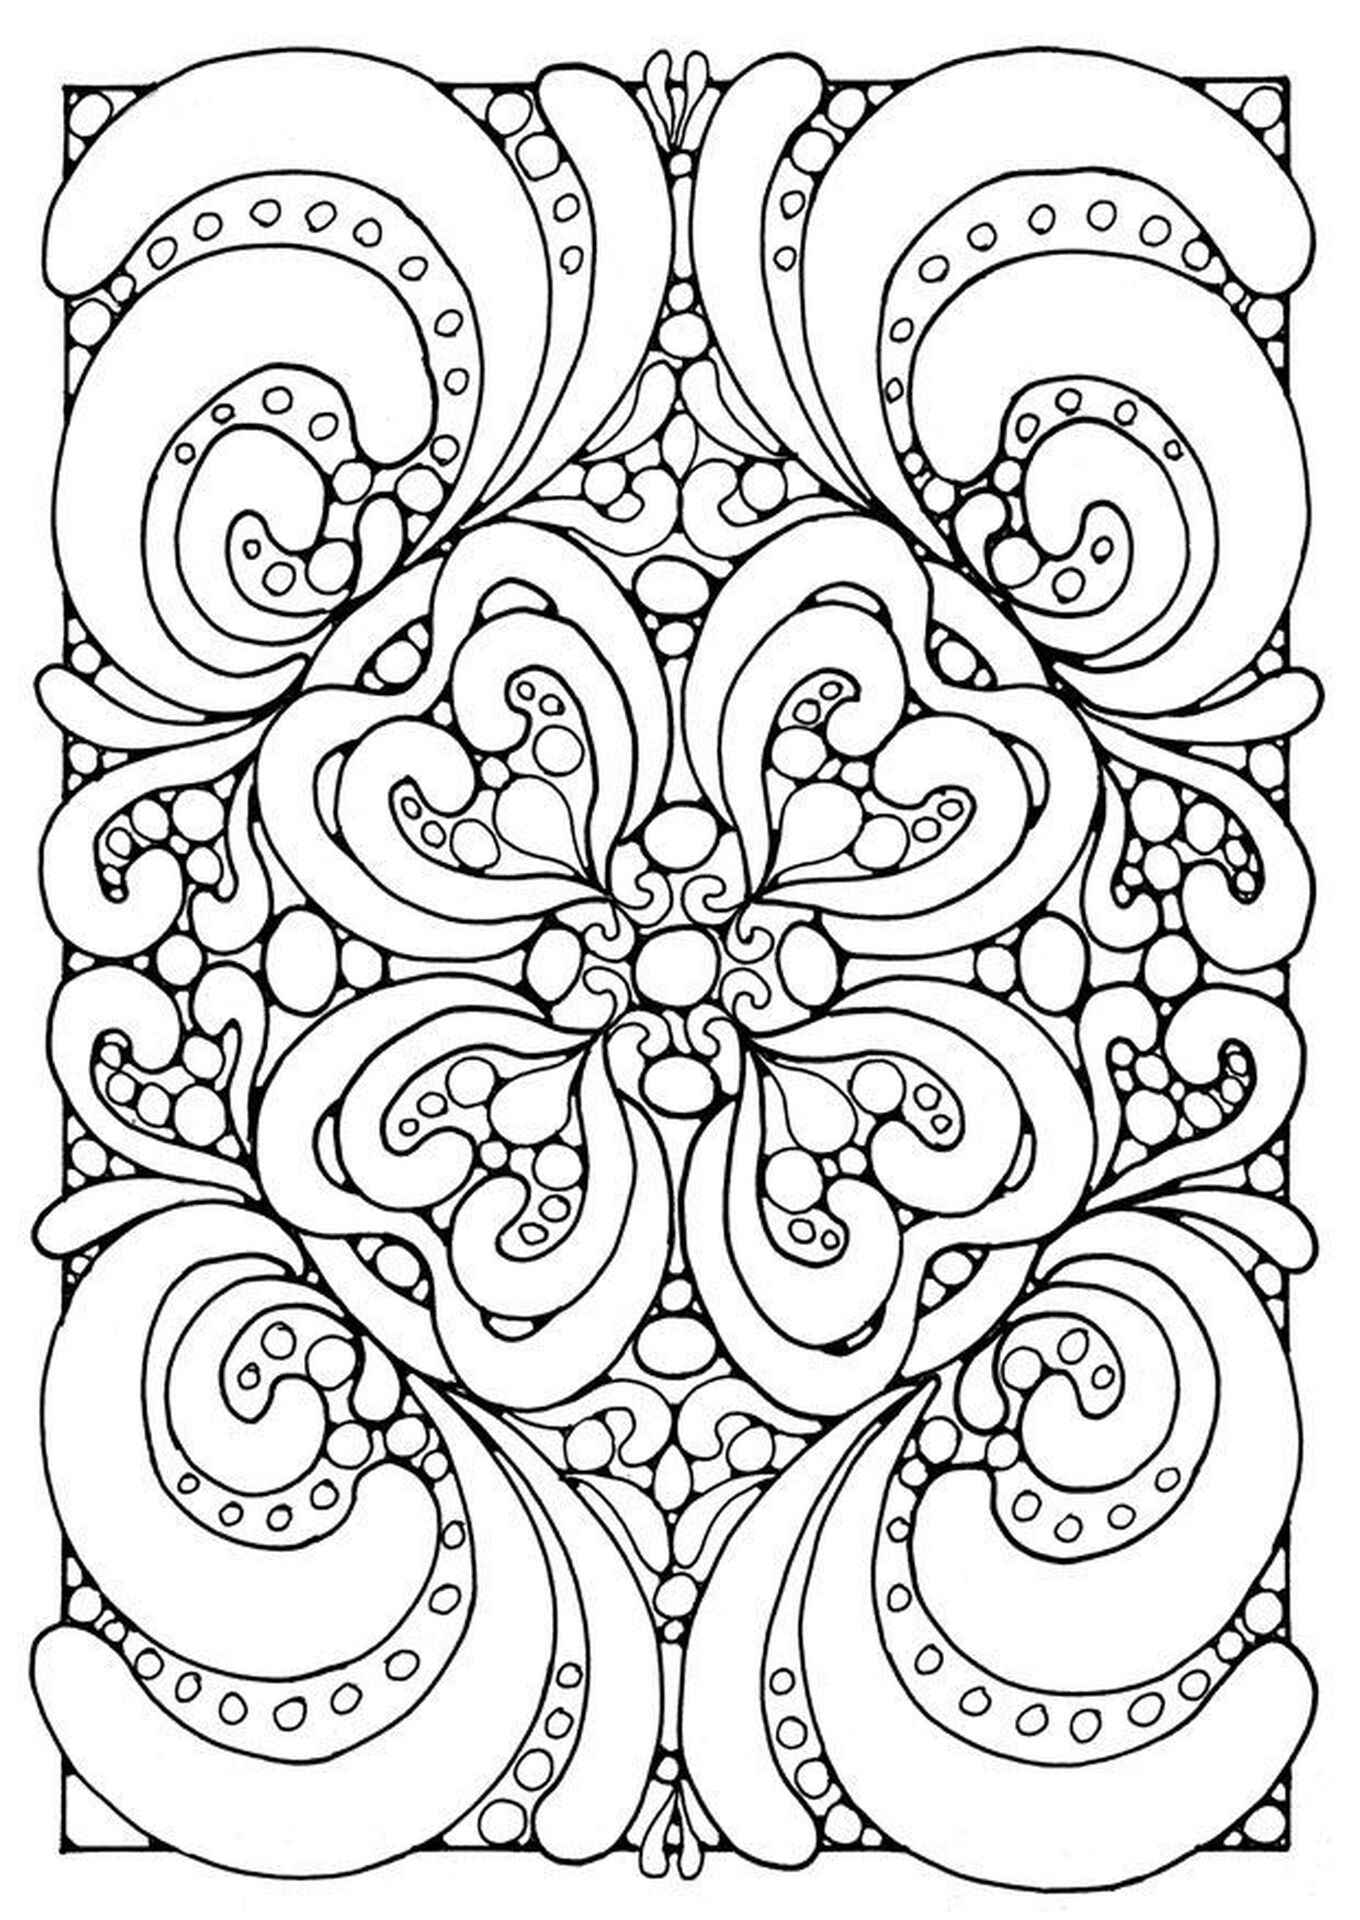 Complex Geometric Pattern Coloring Pages